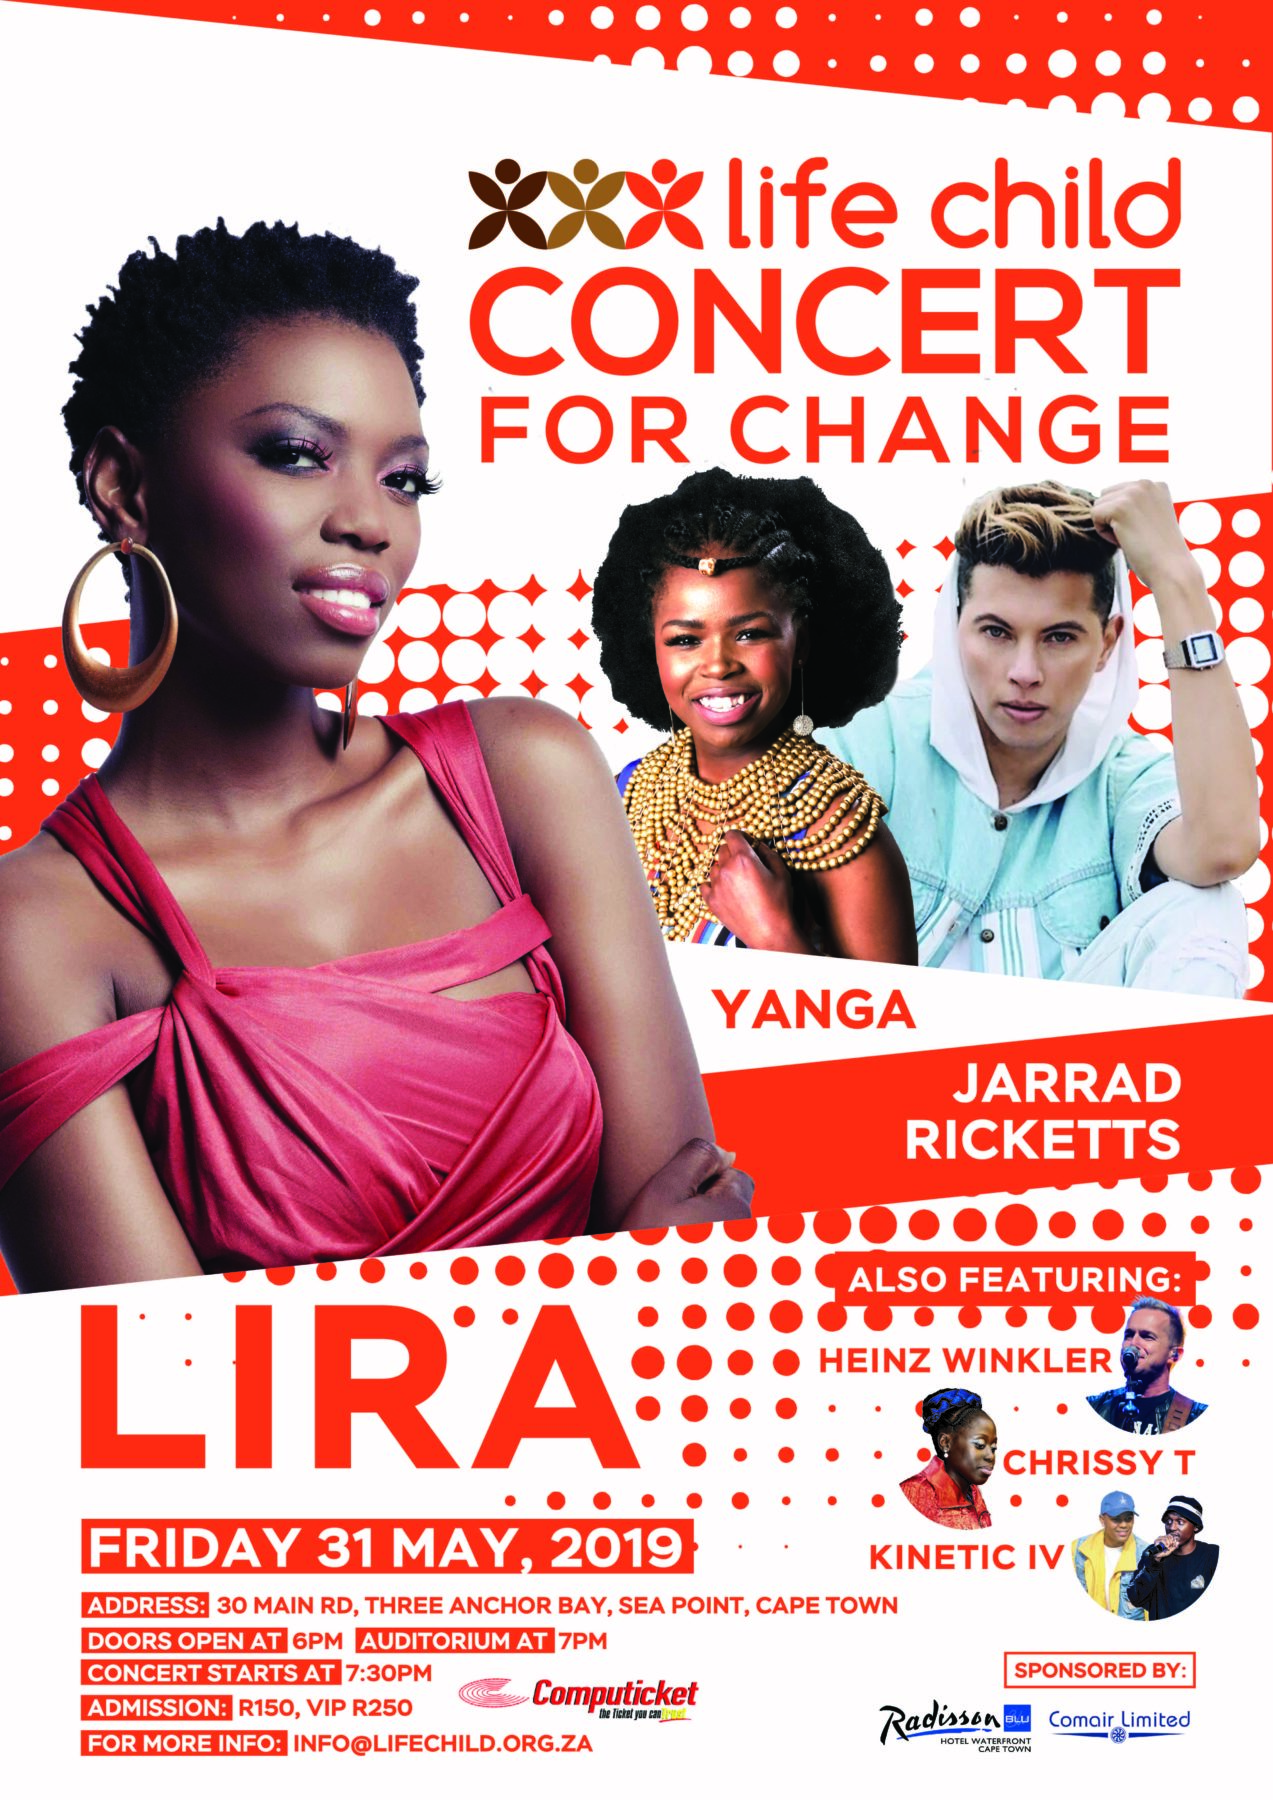 Life Child Concert for Change 2019 featuring Lira